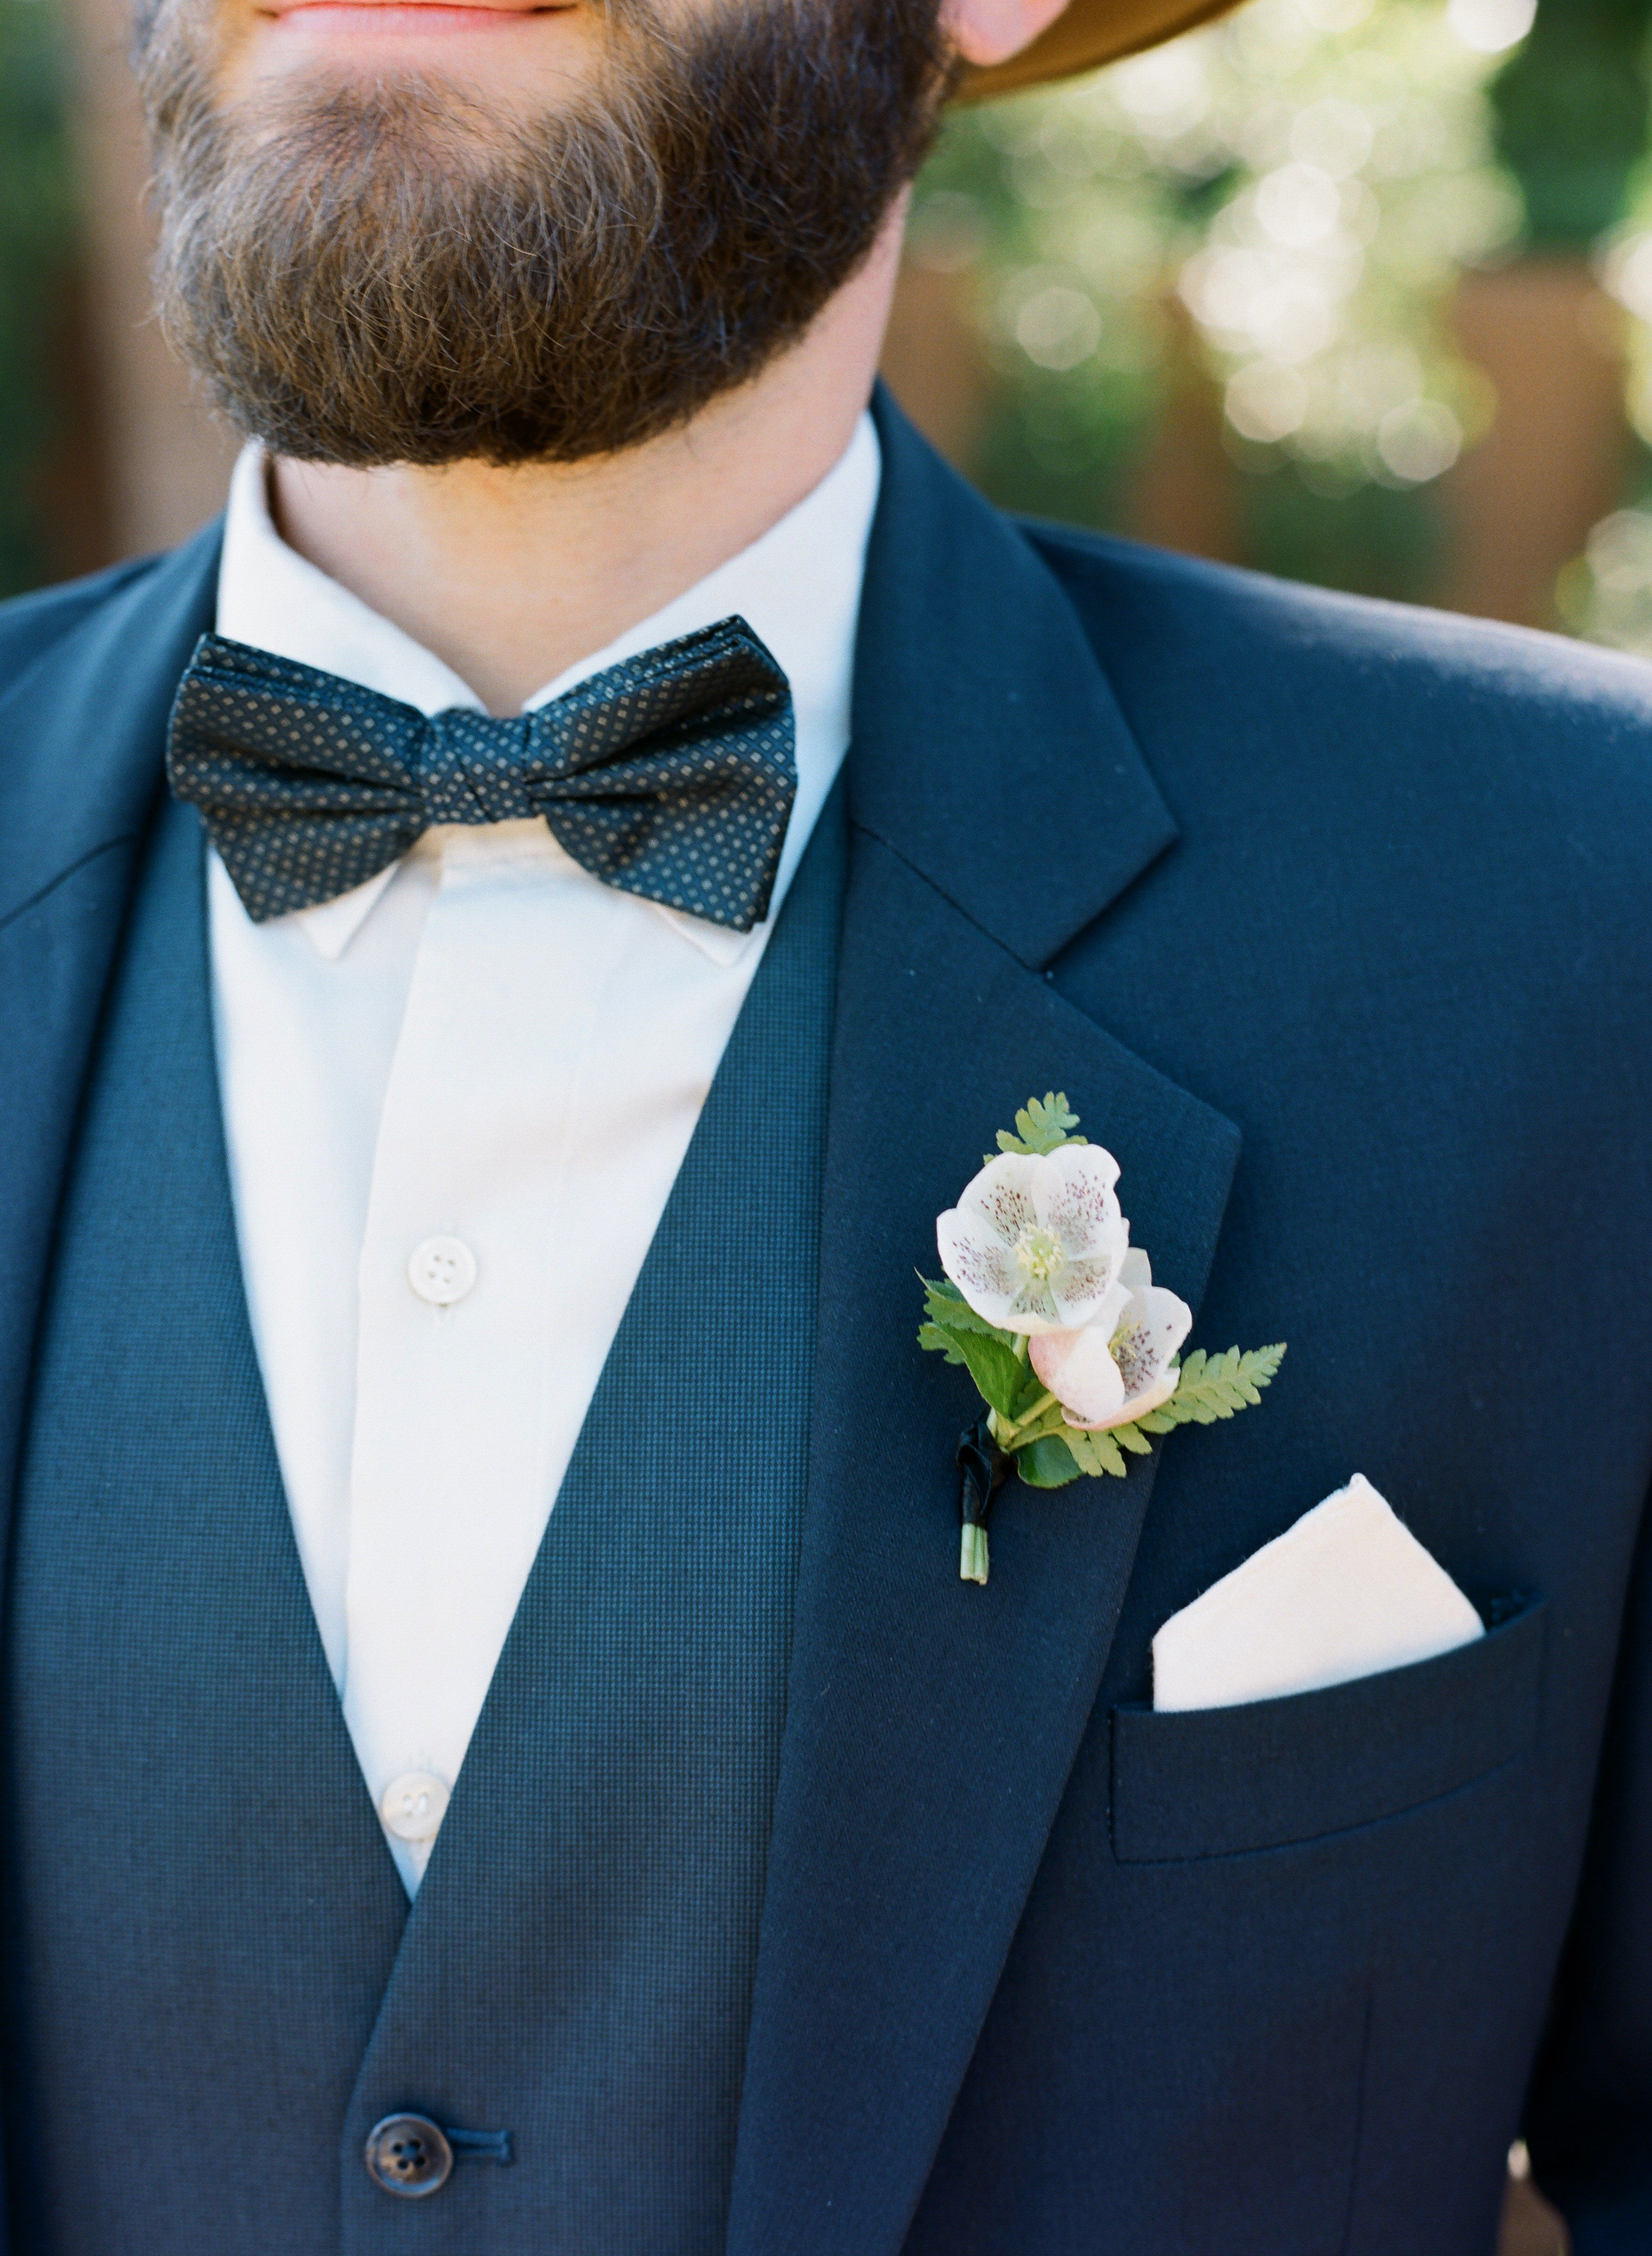 99ef4453e24a ... groom is wearing a custom navy blue suit. He styled the suit with a  dotted bow tie, blush pink and green floral boutonniere and a simple pocket  square.